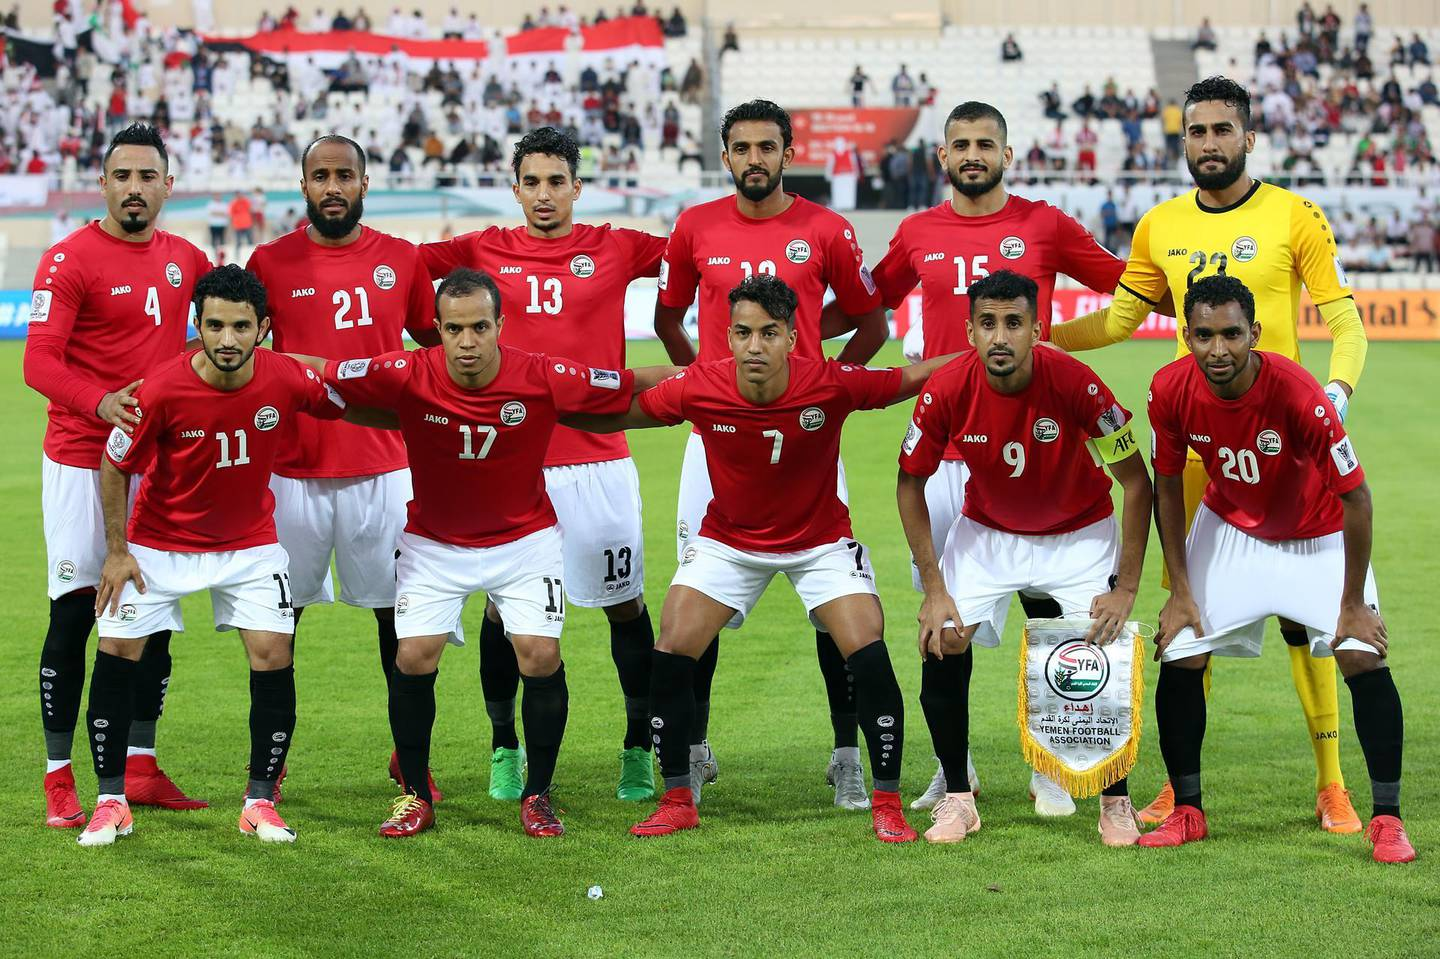 epa07277491 Players of Yemen line up before the 2019 AFC Asian Cup group D soccer match between Yemen and Iraq in Sharjah, United Arab Emirates, 12 January 2019.  EPA/MAHMOUD KHALED